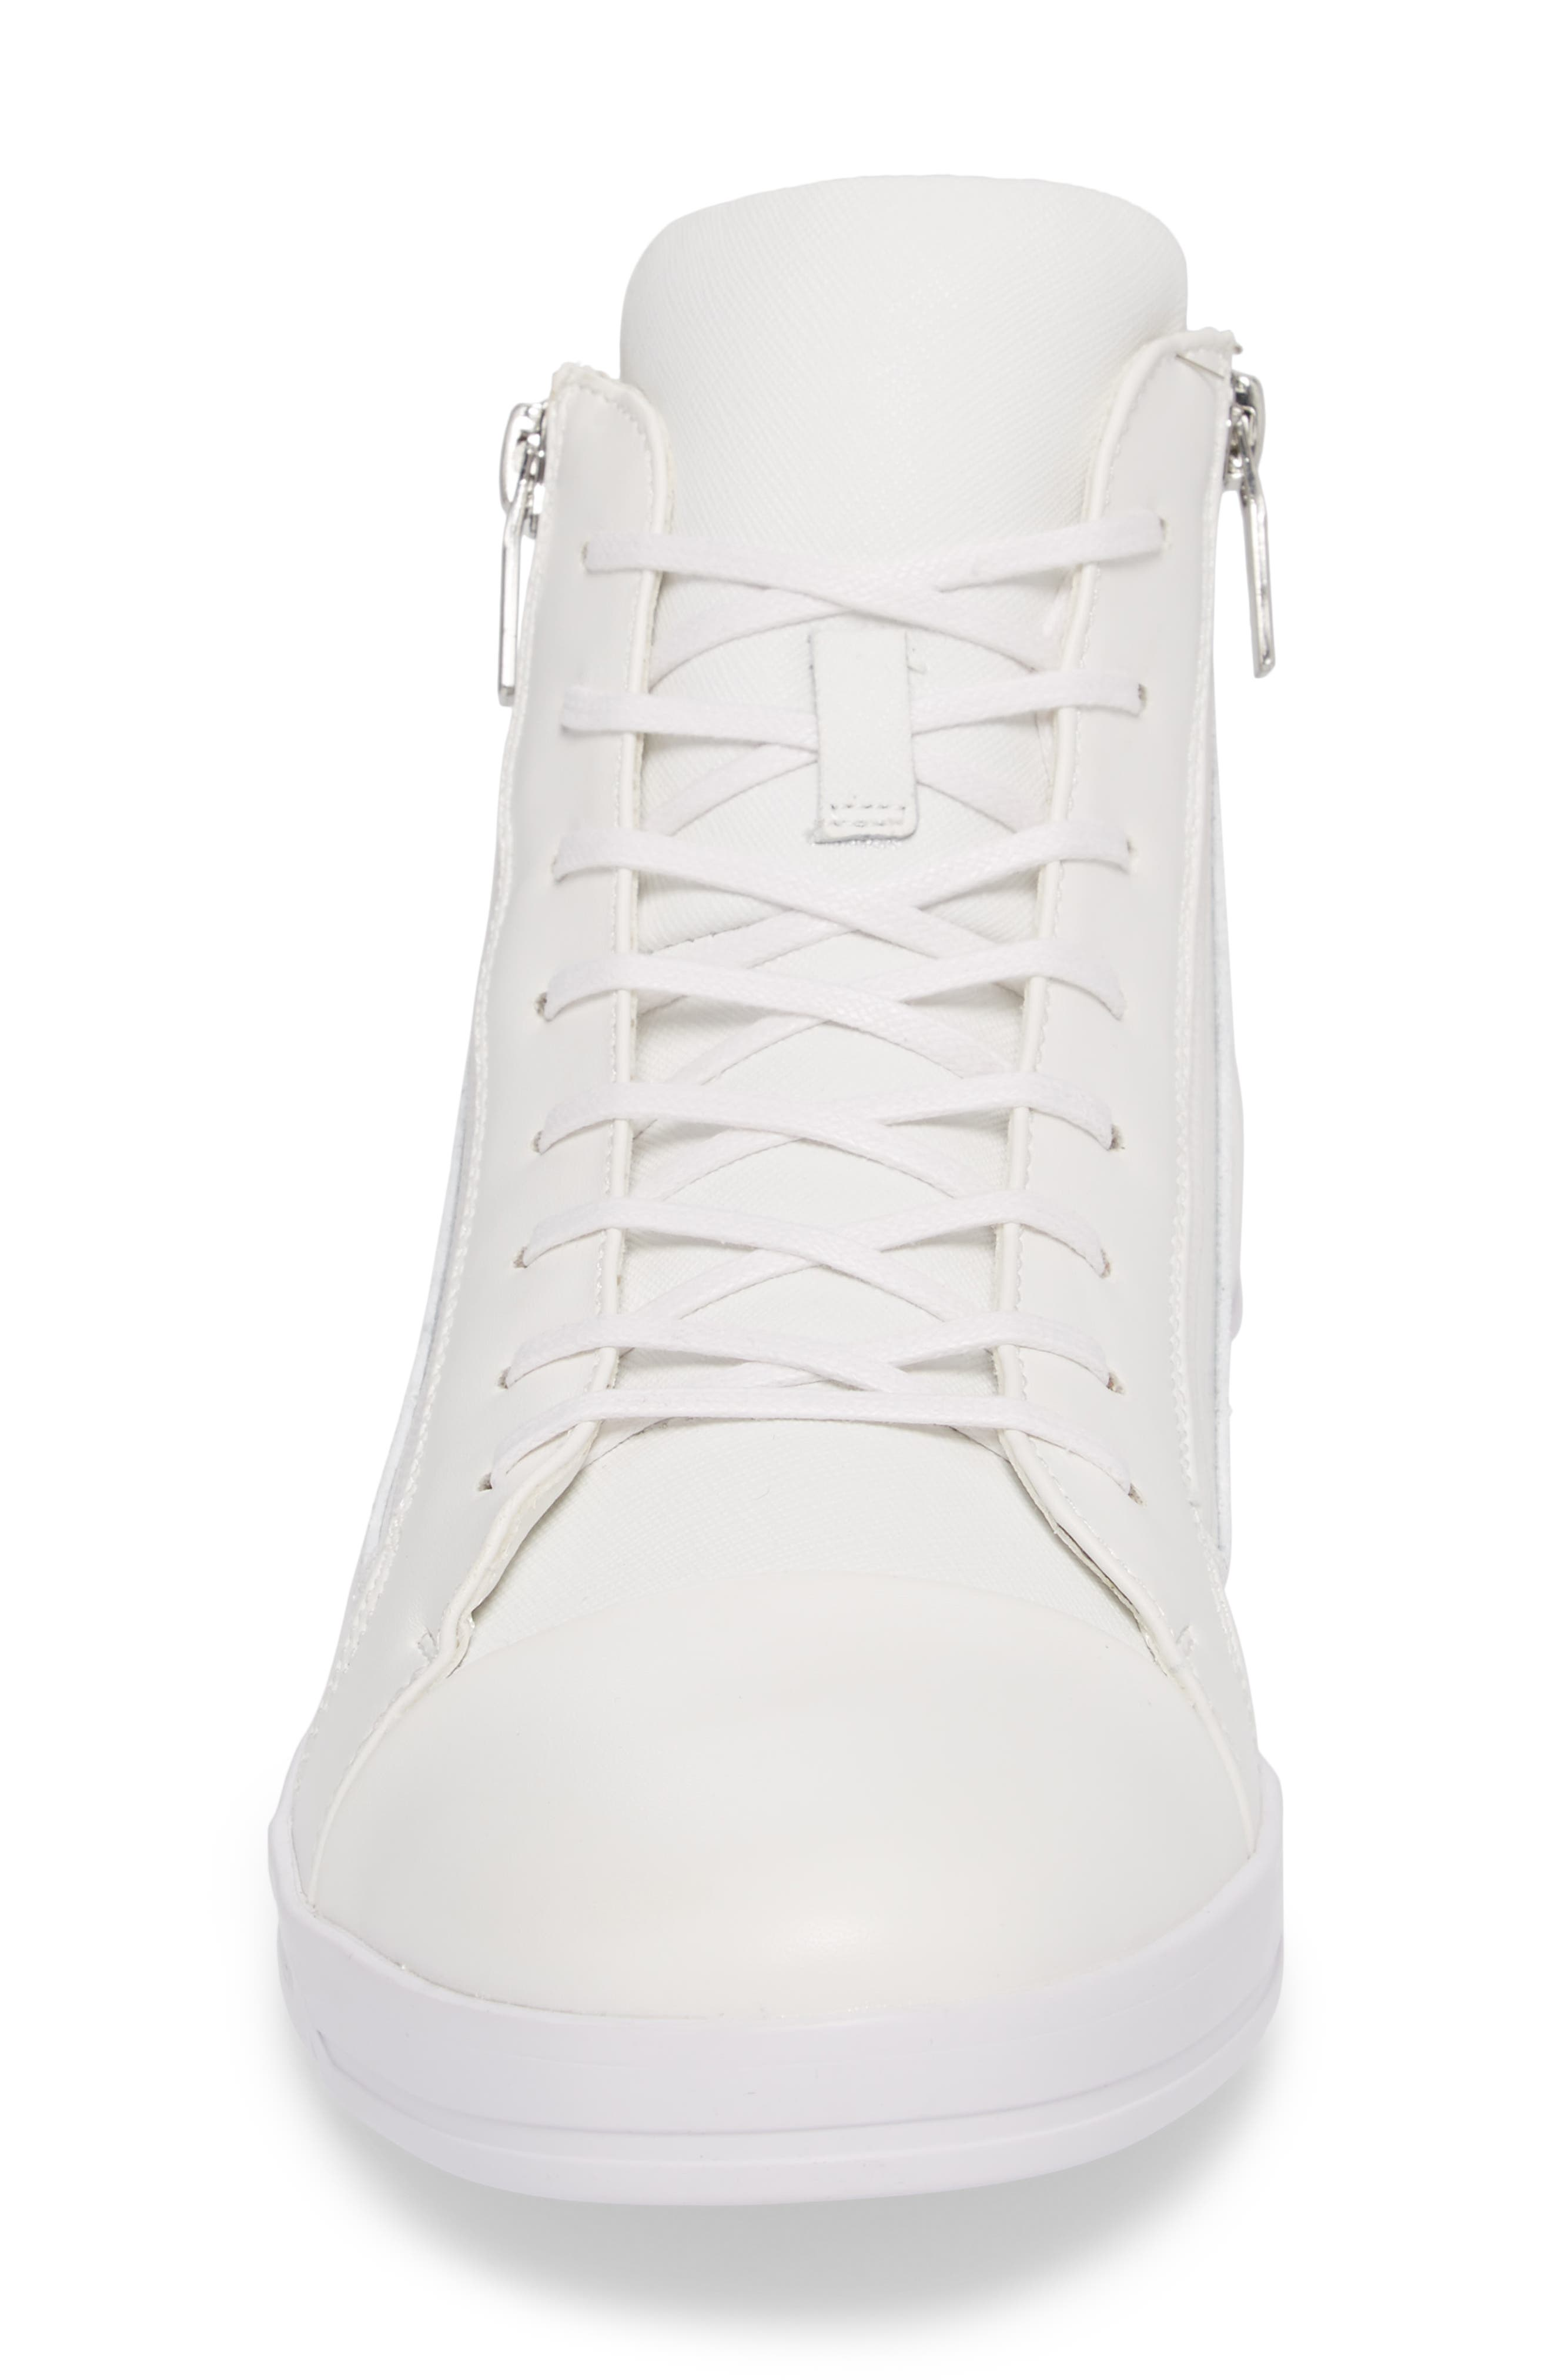 Berke High Top Sneaker,                             Alternate thumbnail 4, color,                             White Leather